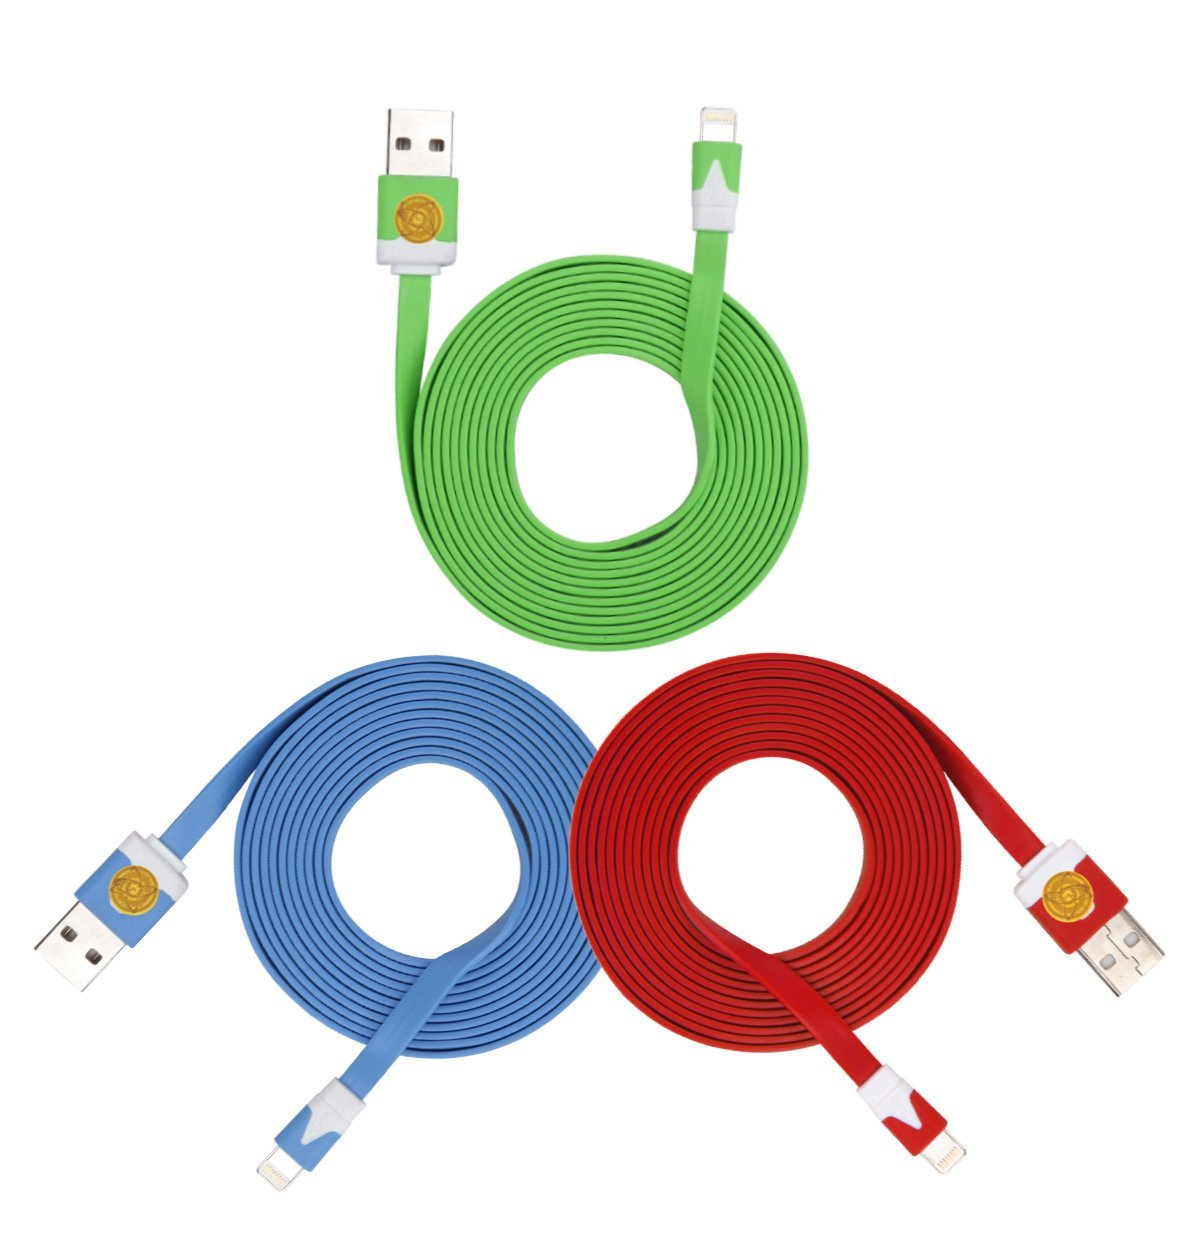 2M Heavy Duty Flat Noodle Lightning USB Cable for Apple iPhone 6,6S -Blu grn red